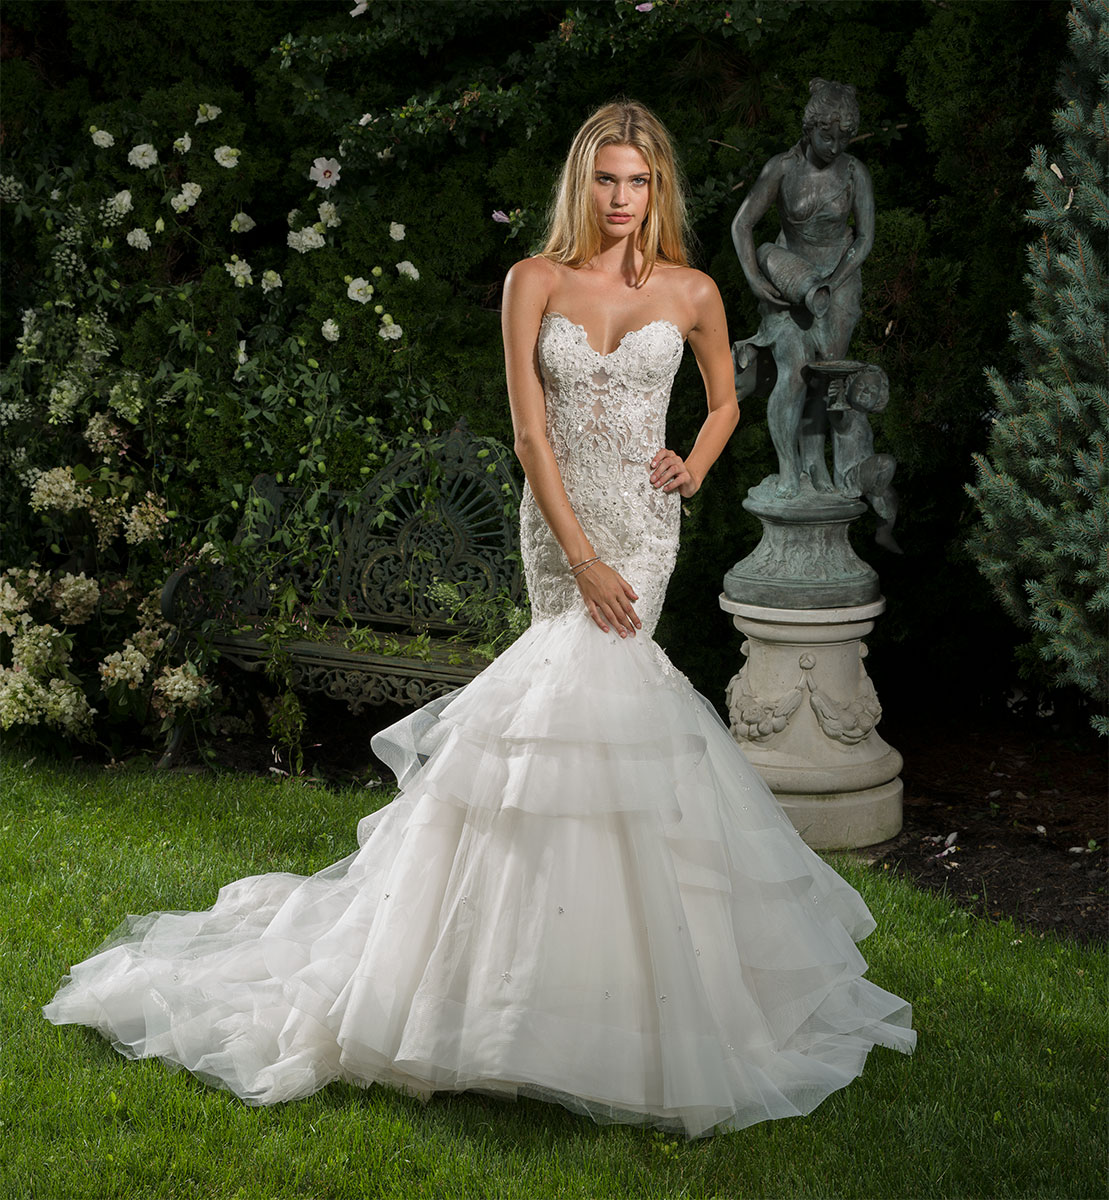 Wedding Gown Boutique: Bridal Gowns By Eve Of Milady